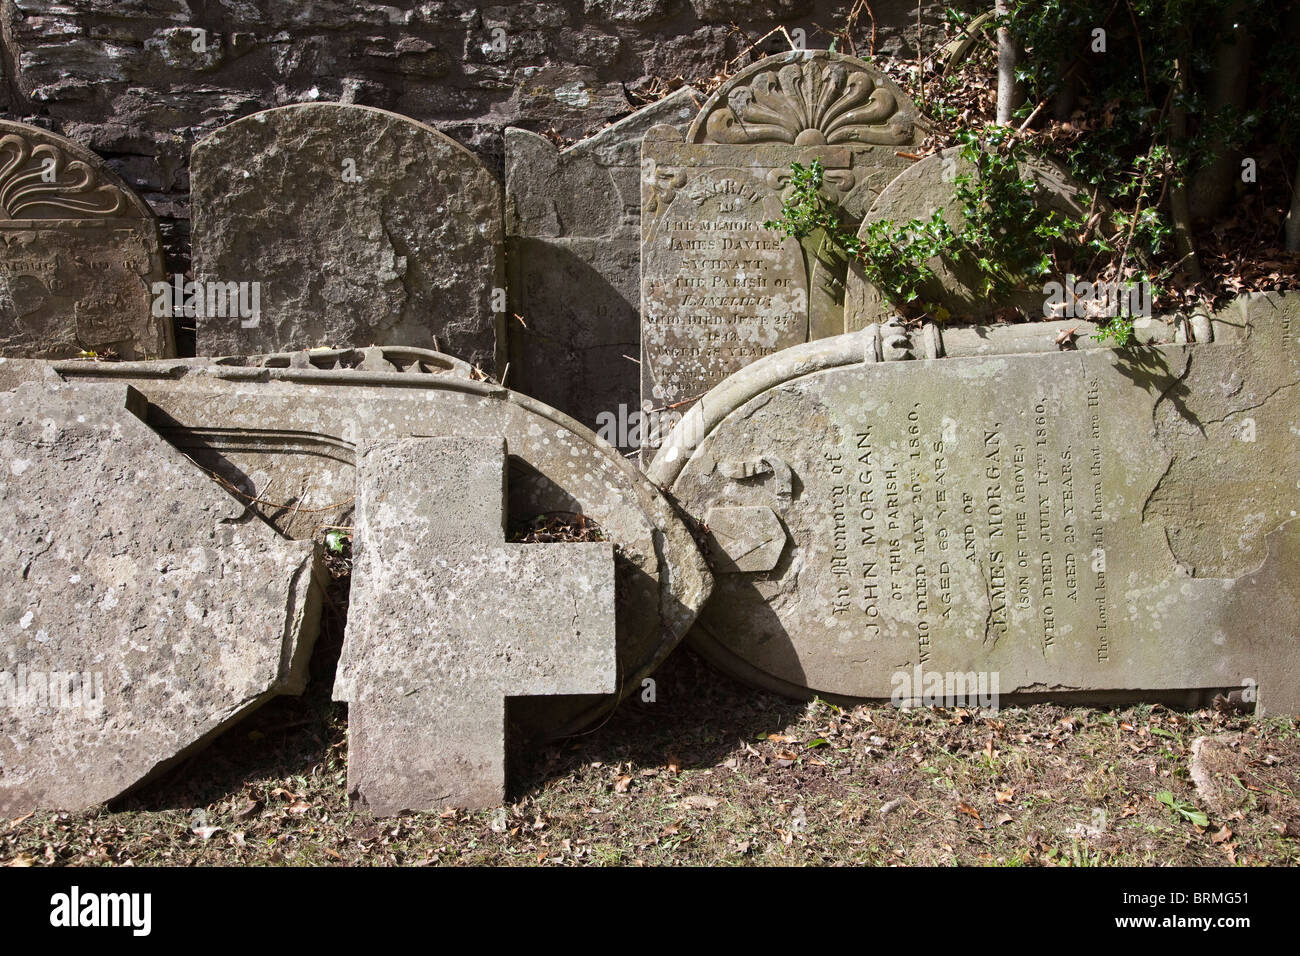 Gravestones removed from churchyard and stacked at side Talgarth Wales UK - Stock Image